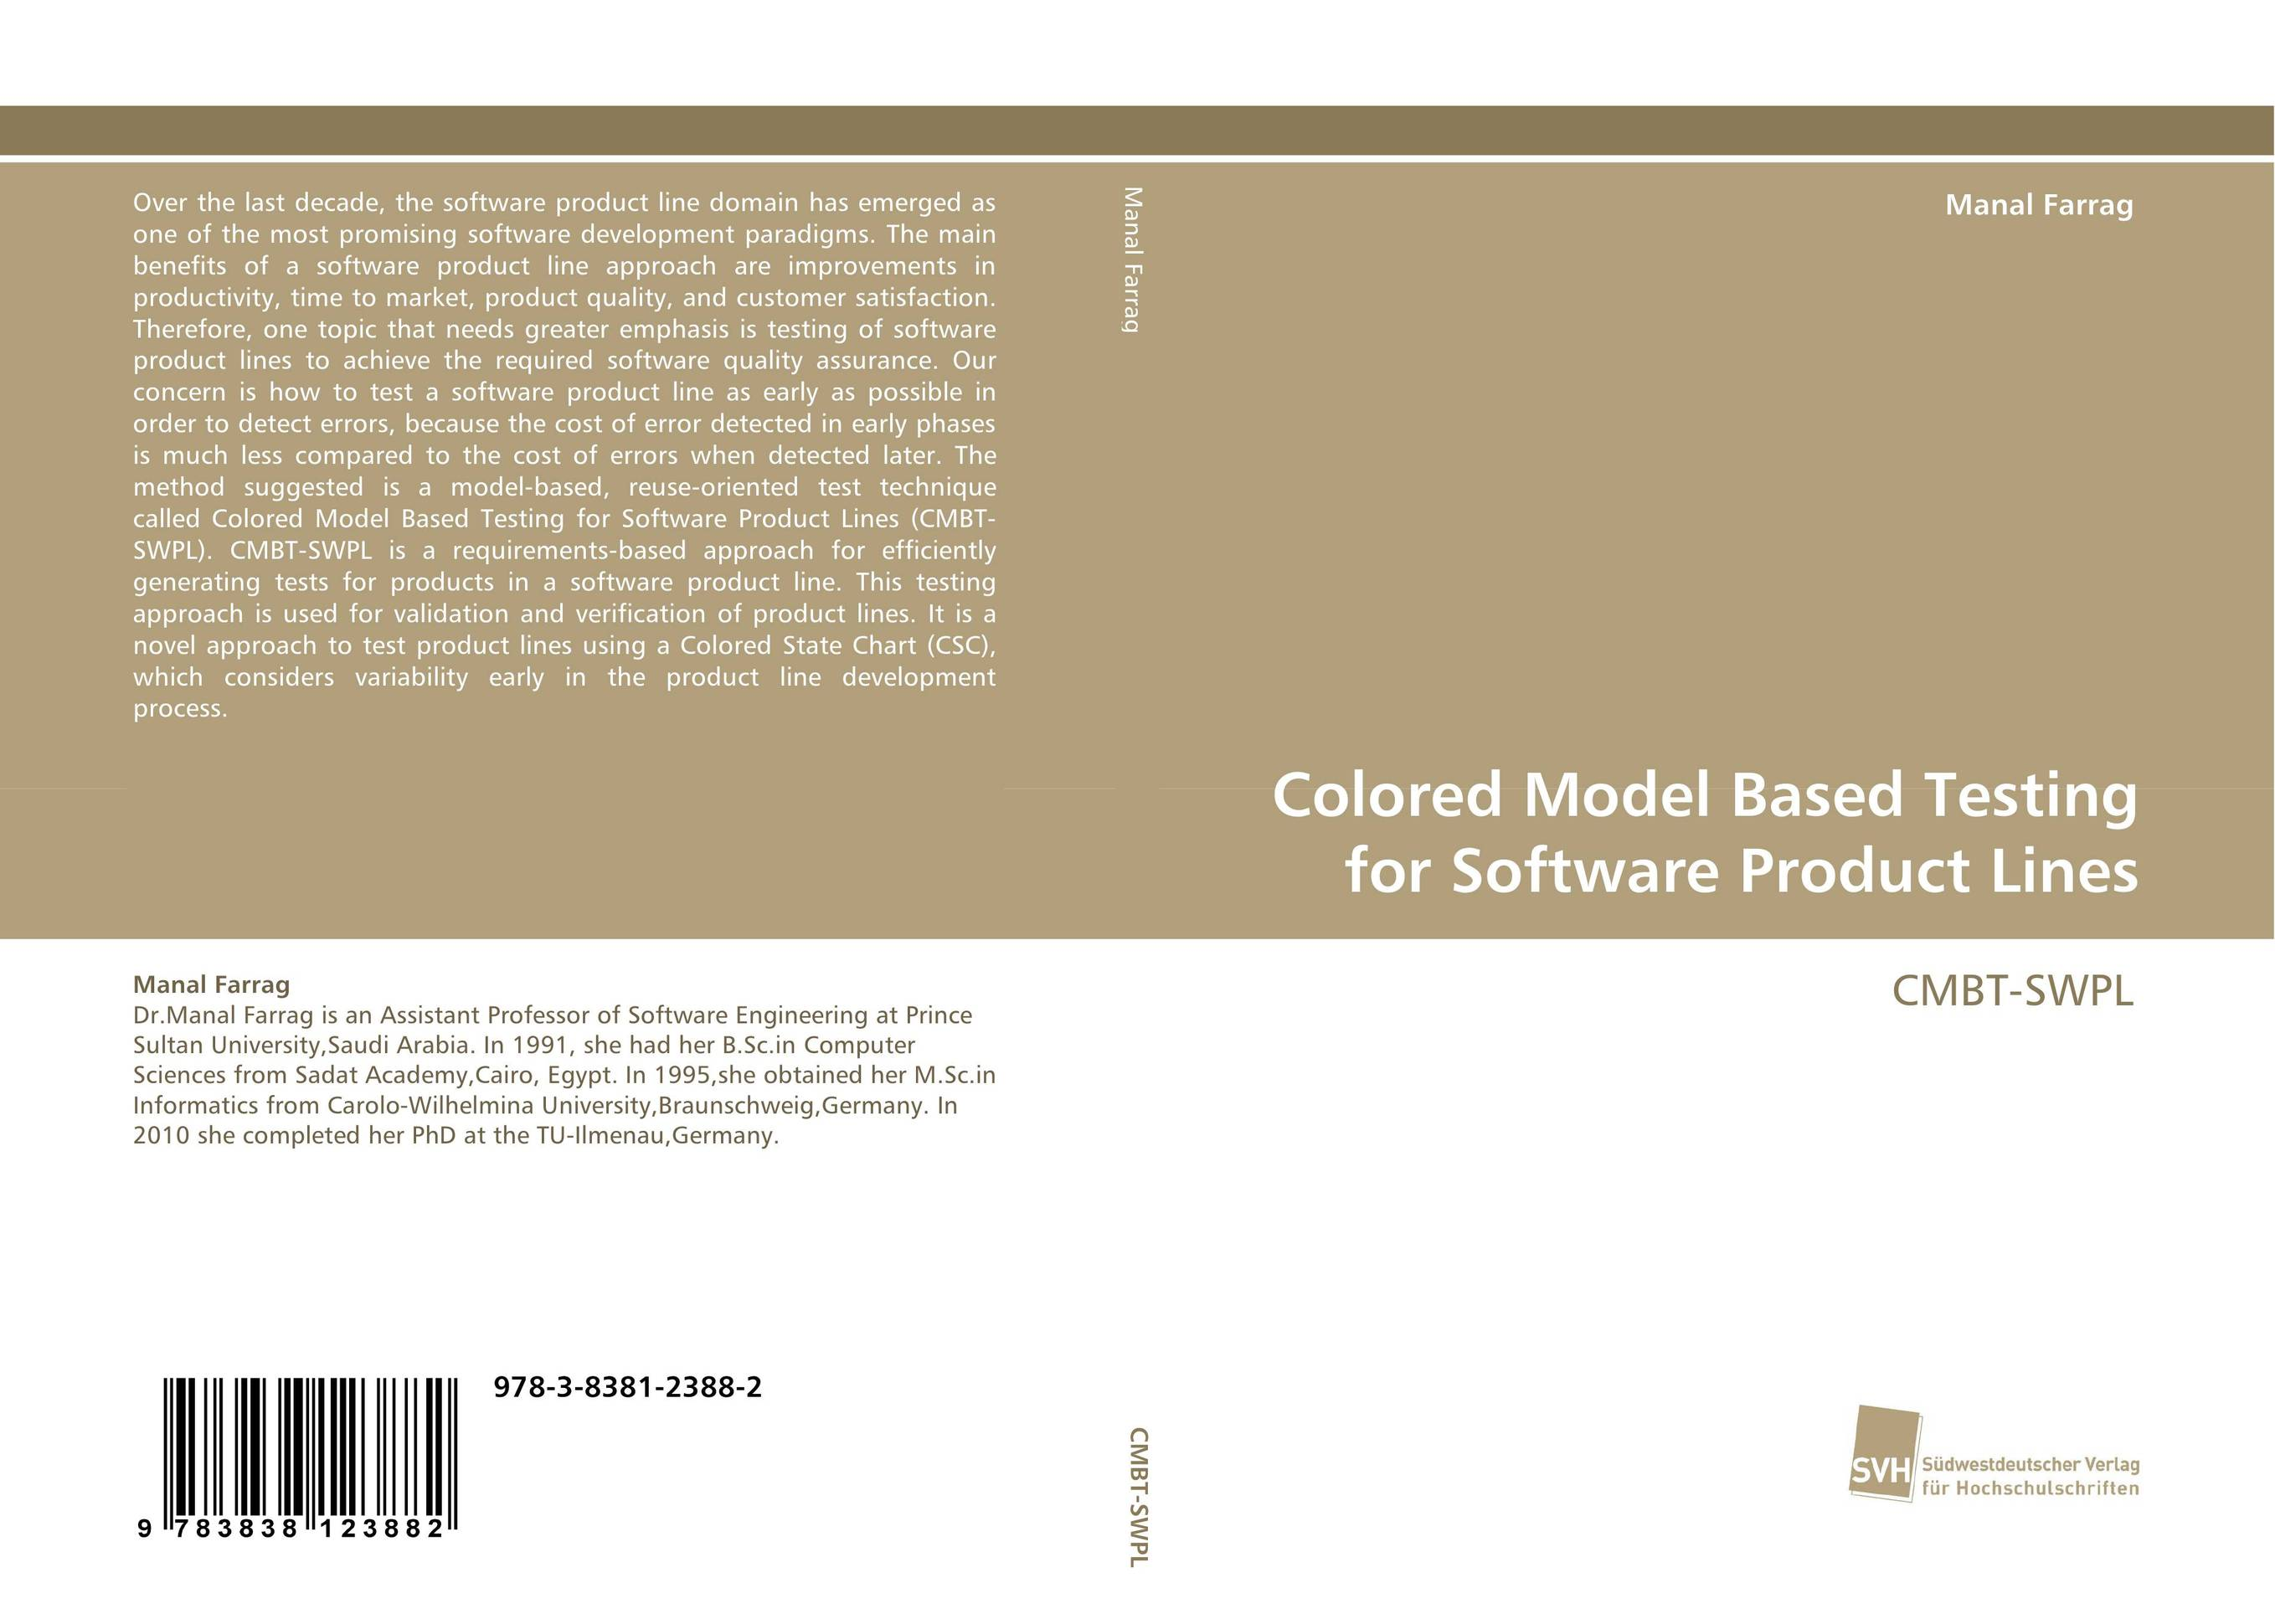 Colored Model Based Testing for Software Product Lines front